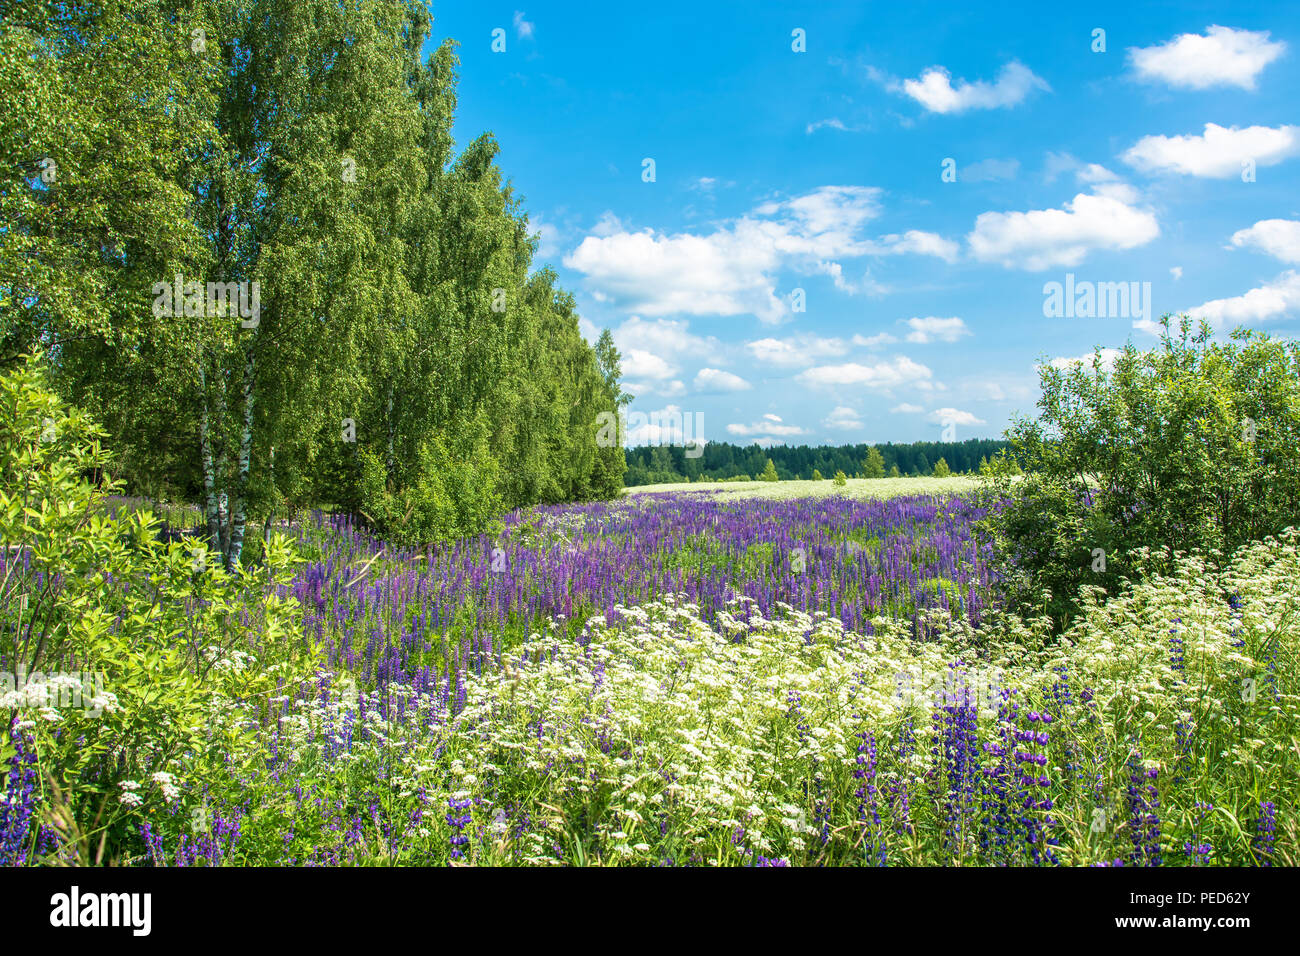 A large field with flowering lupine on a sunny summer day, Russia. Stock Photo